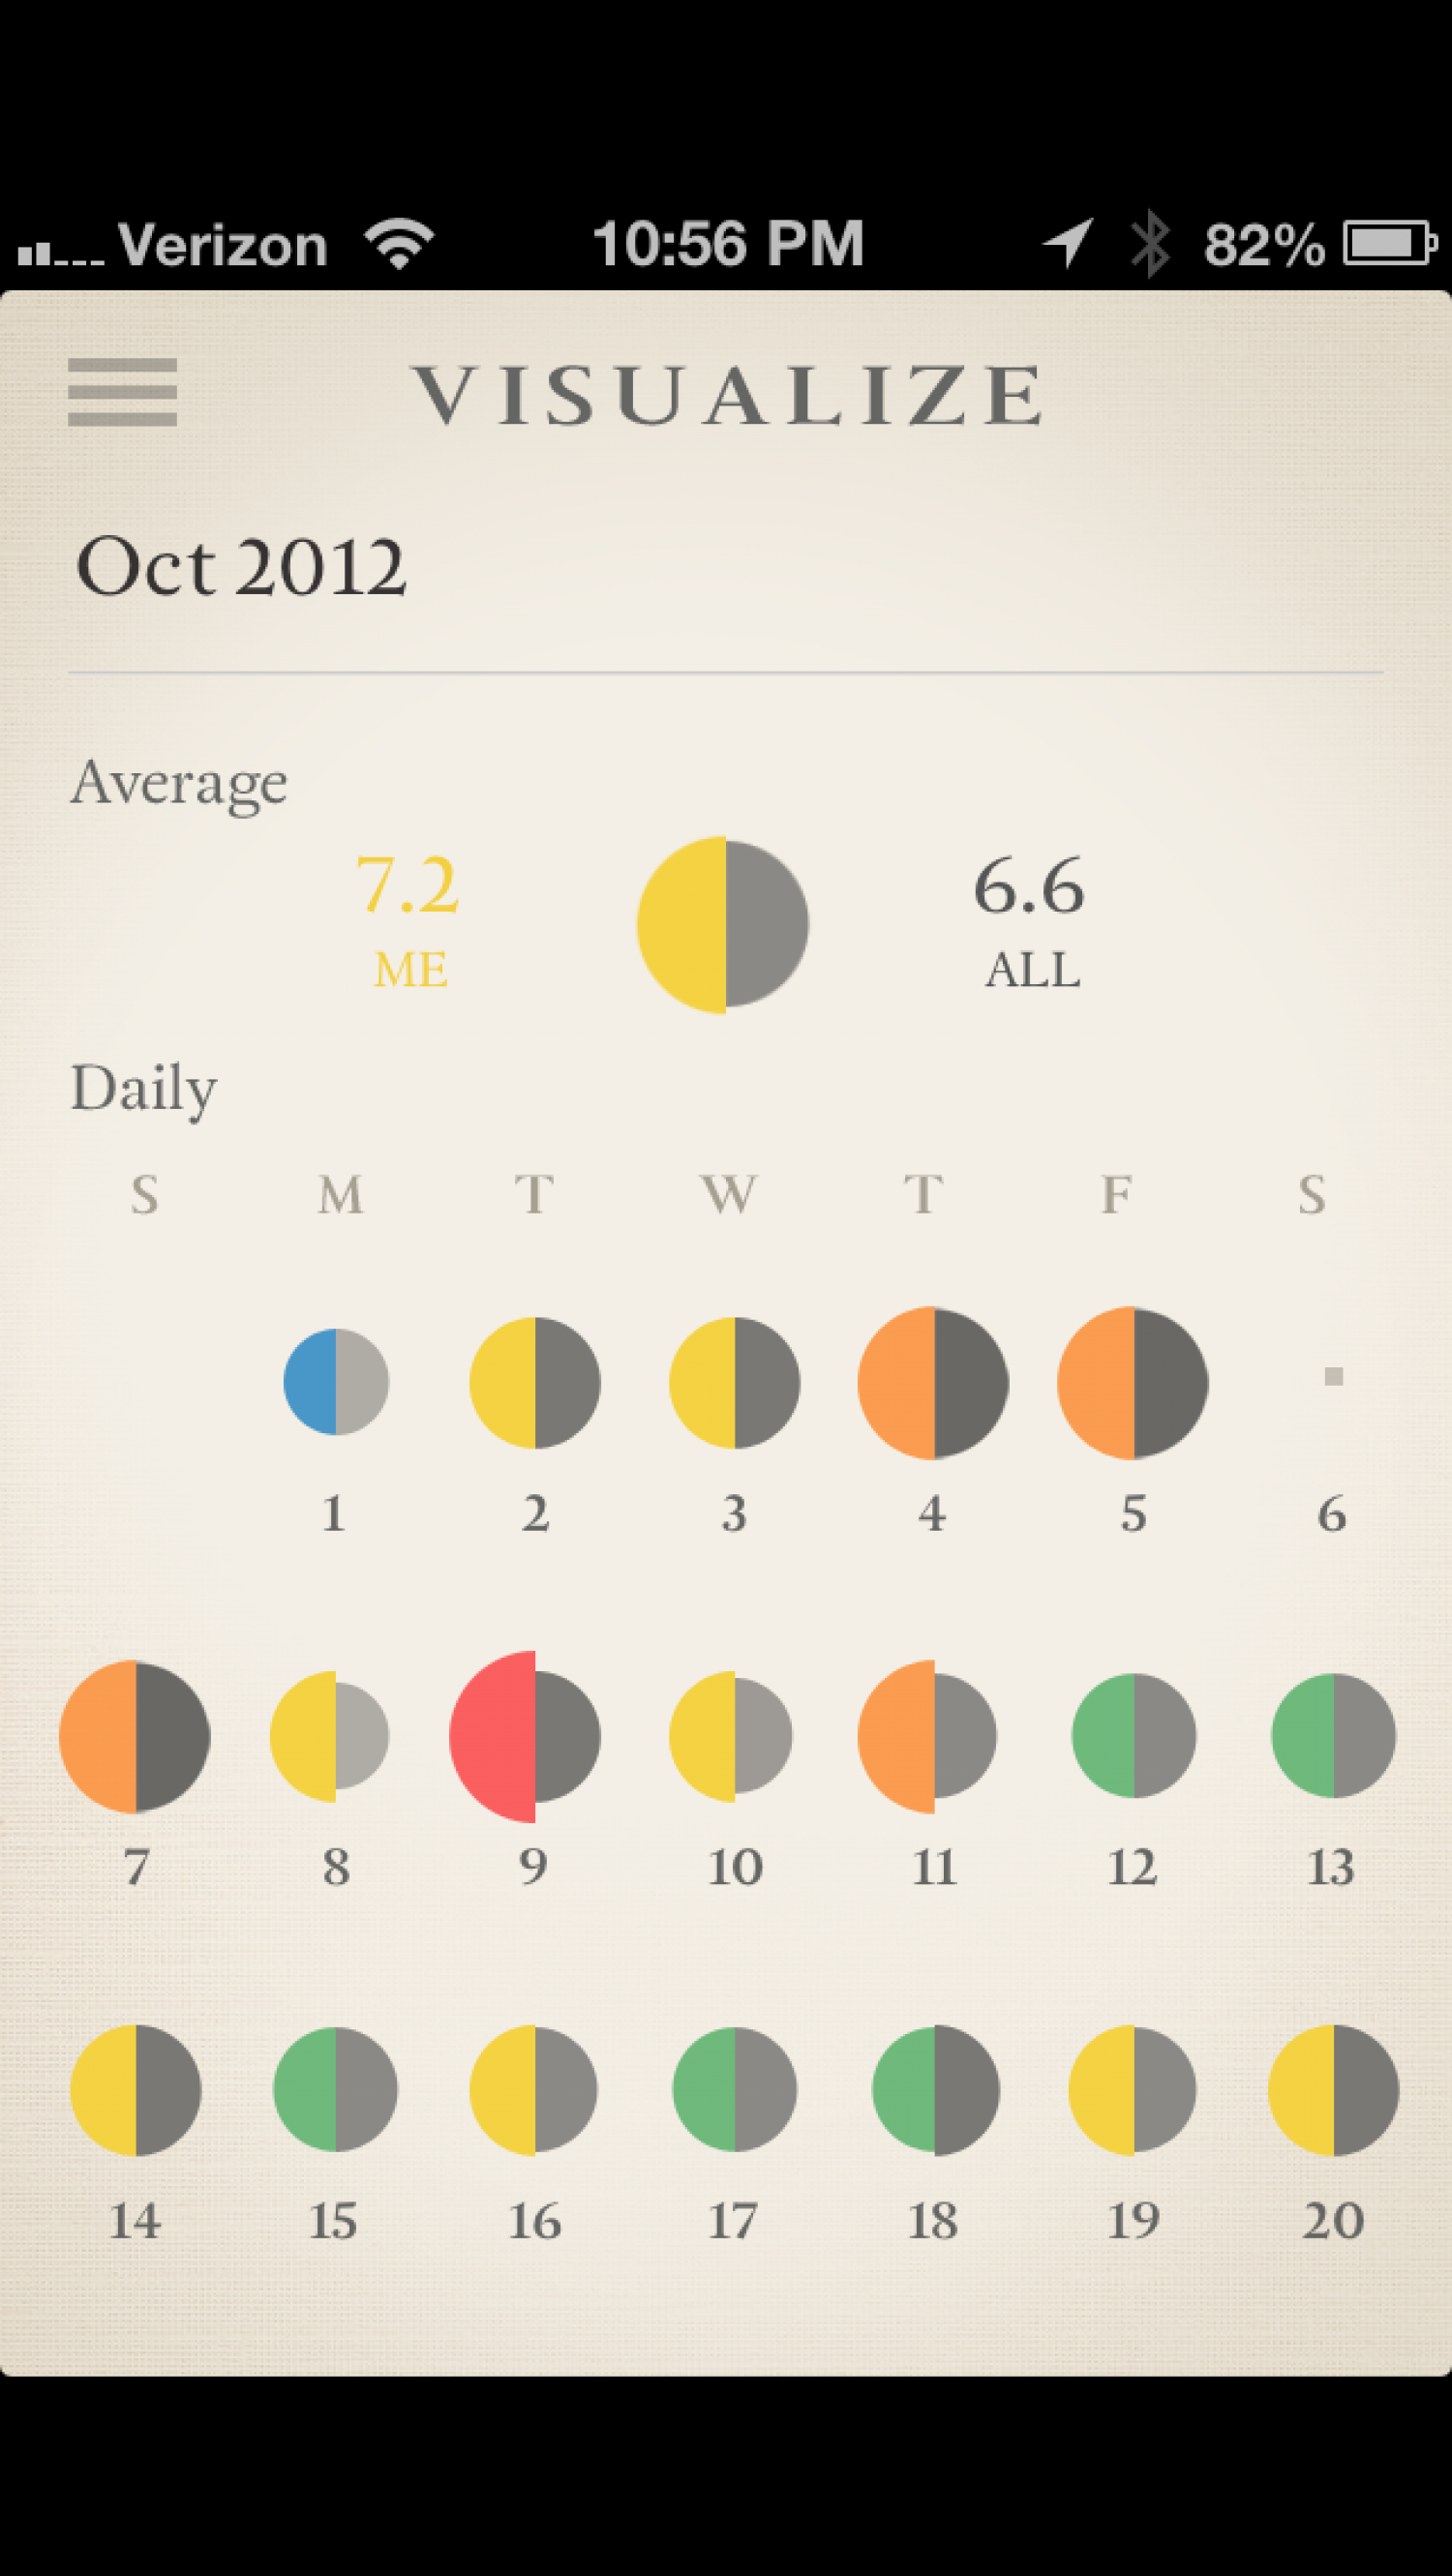 Visualize Month Infographic